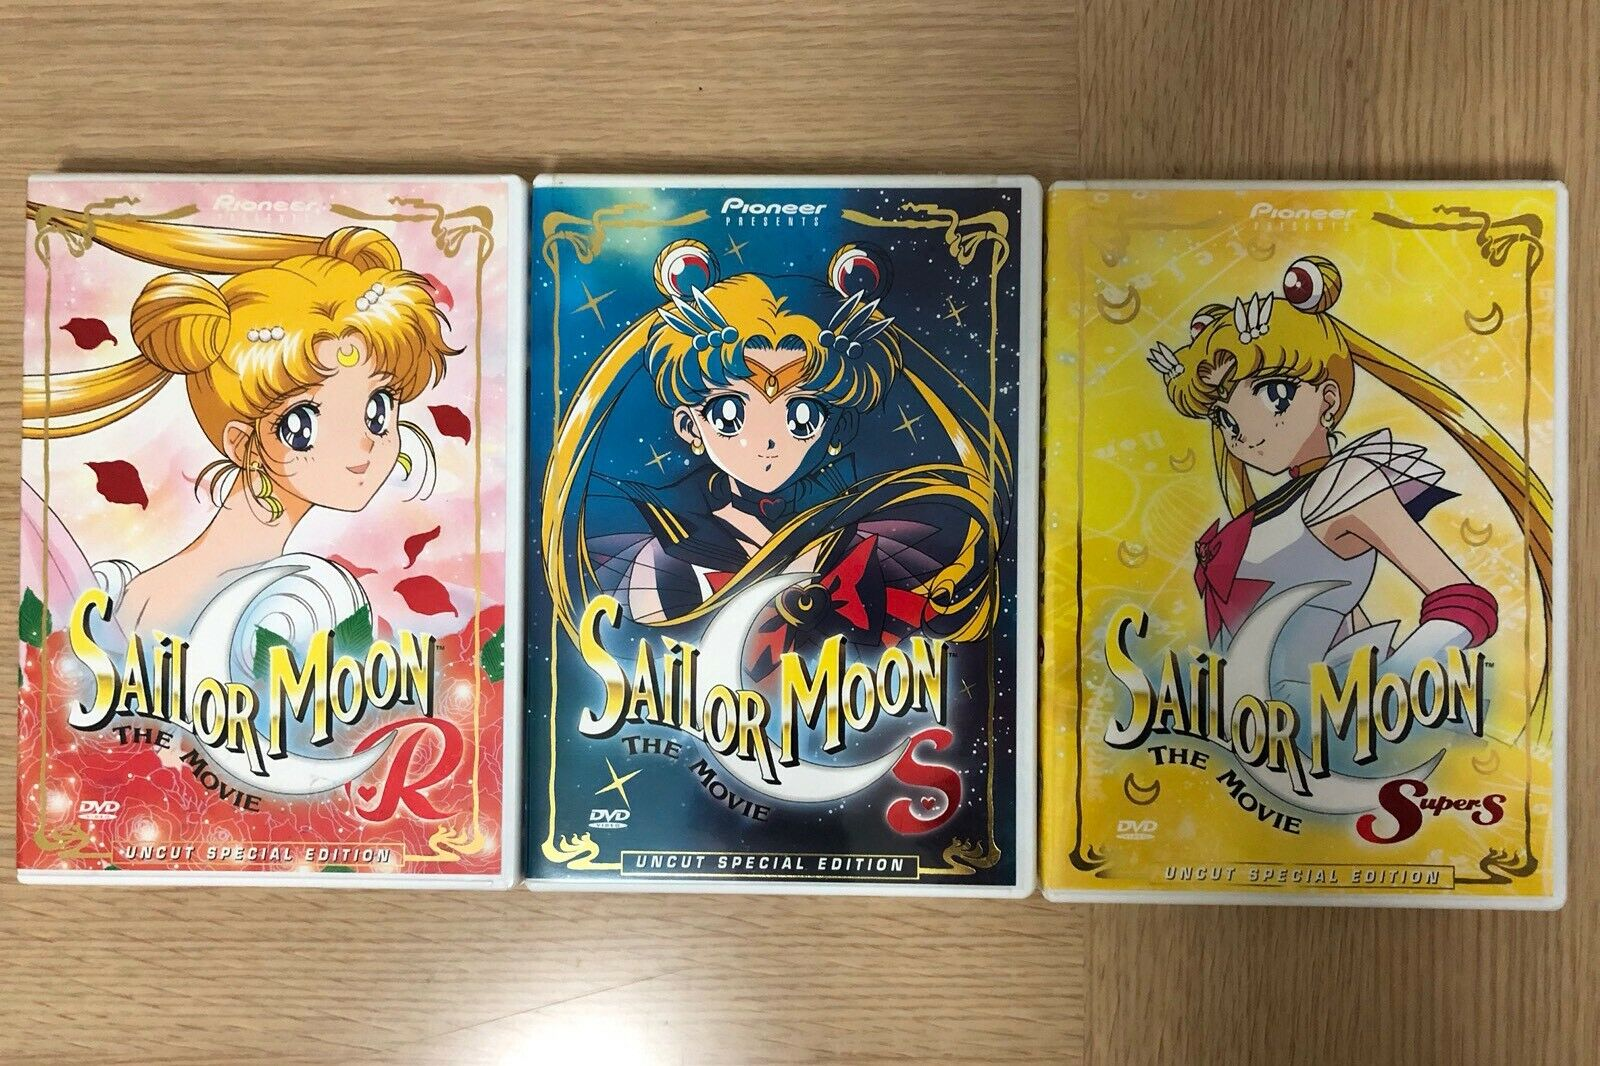 Sailor moon r s supers the movies collection uncut special edition pioneer usa